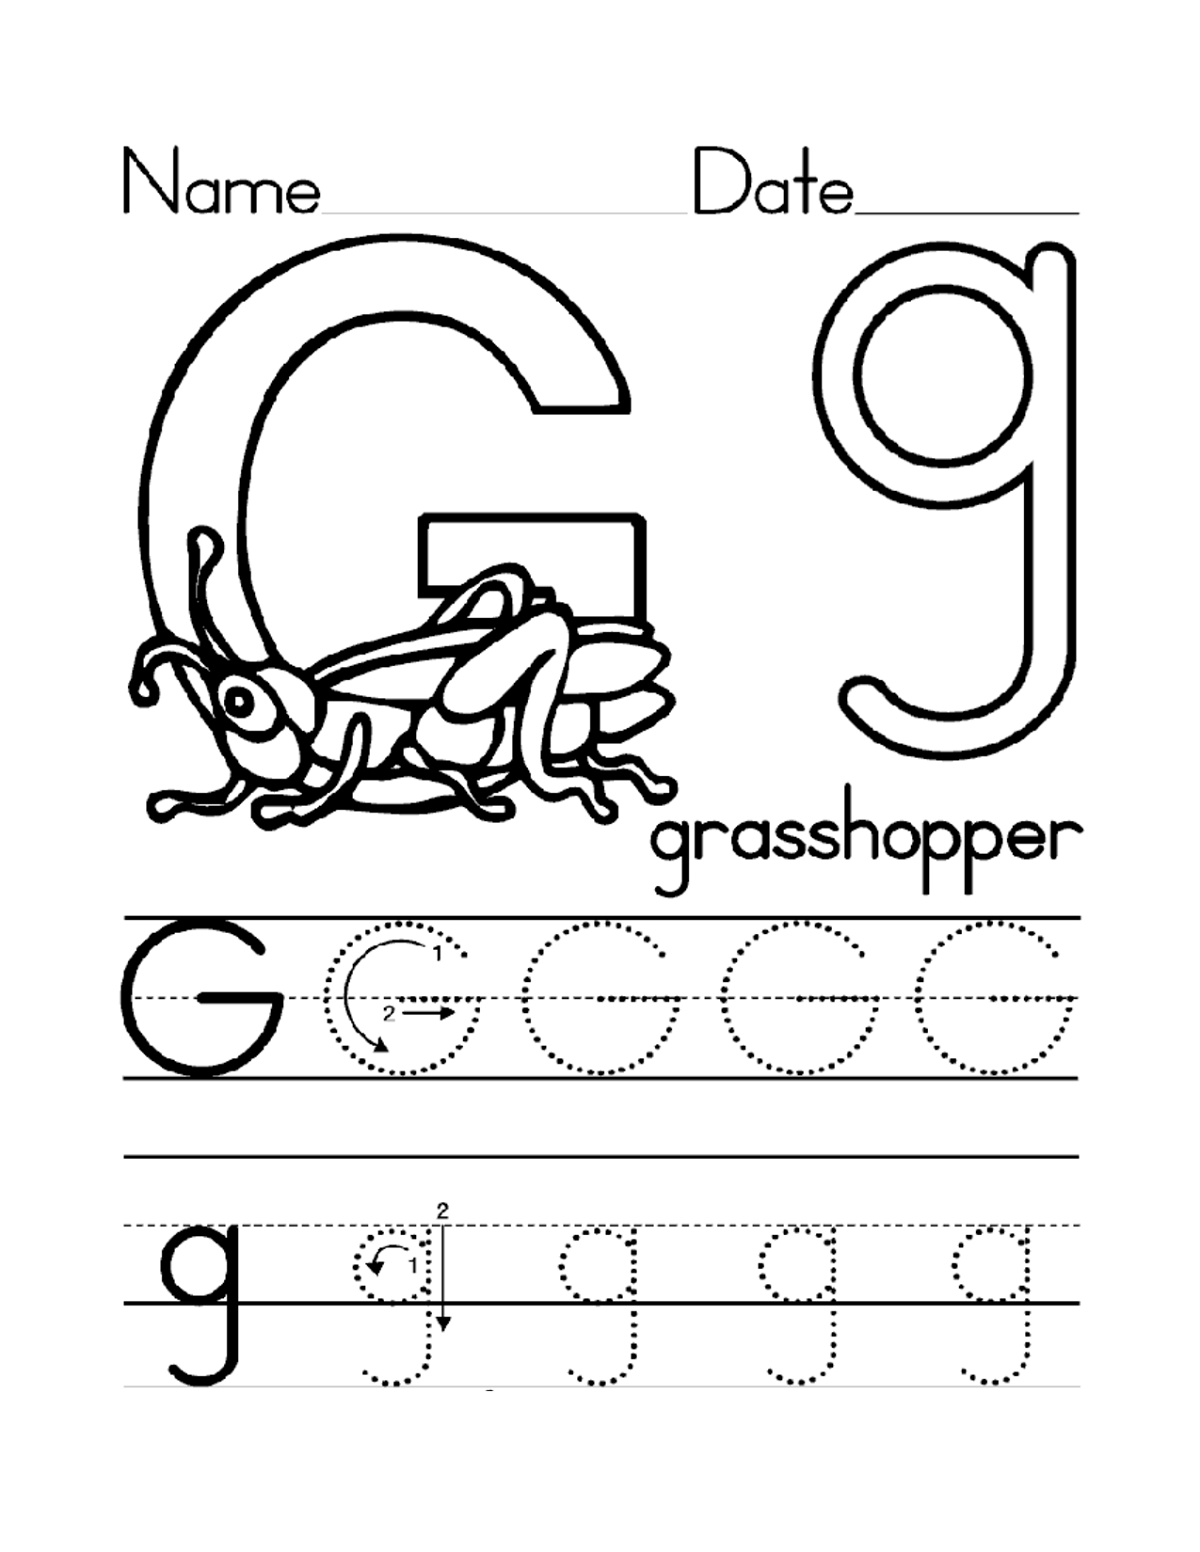 trace-letter-g-simple